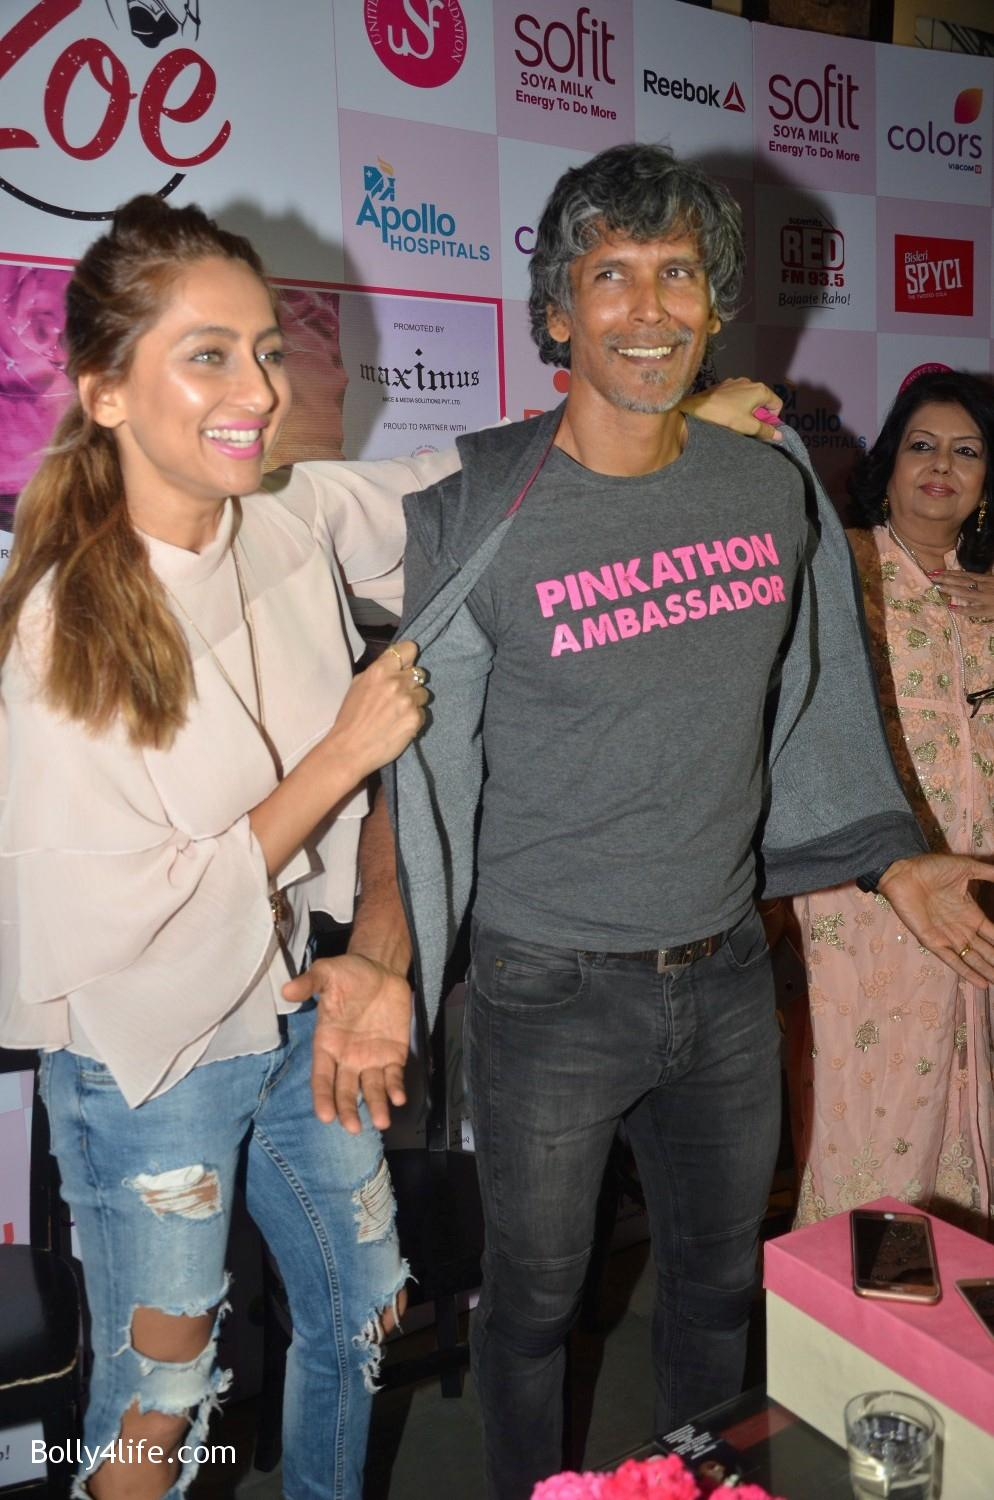 Raj-Nayak-CEO-Colors-RJ-Malishka-Bollywood-actor-Anusha-Dandekar-and-model-Milind-Soman-during-the-announcement-of-Fifth-Edition-of-Pinkathon-3.jpg